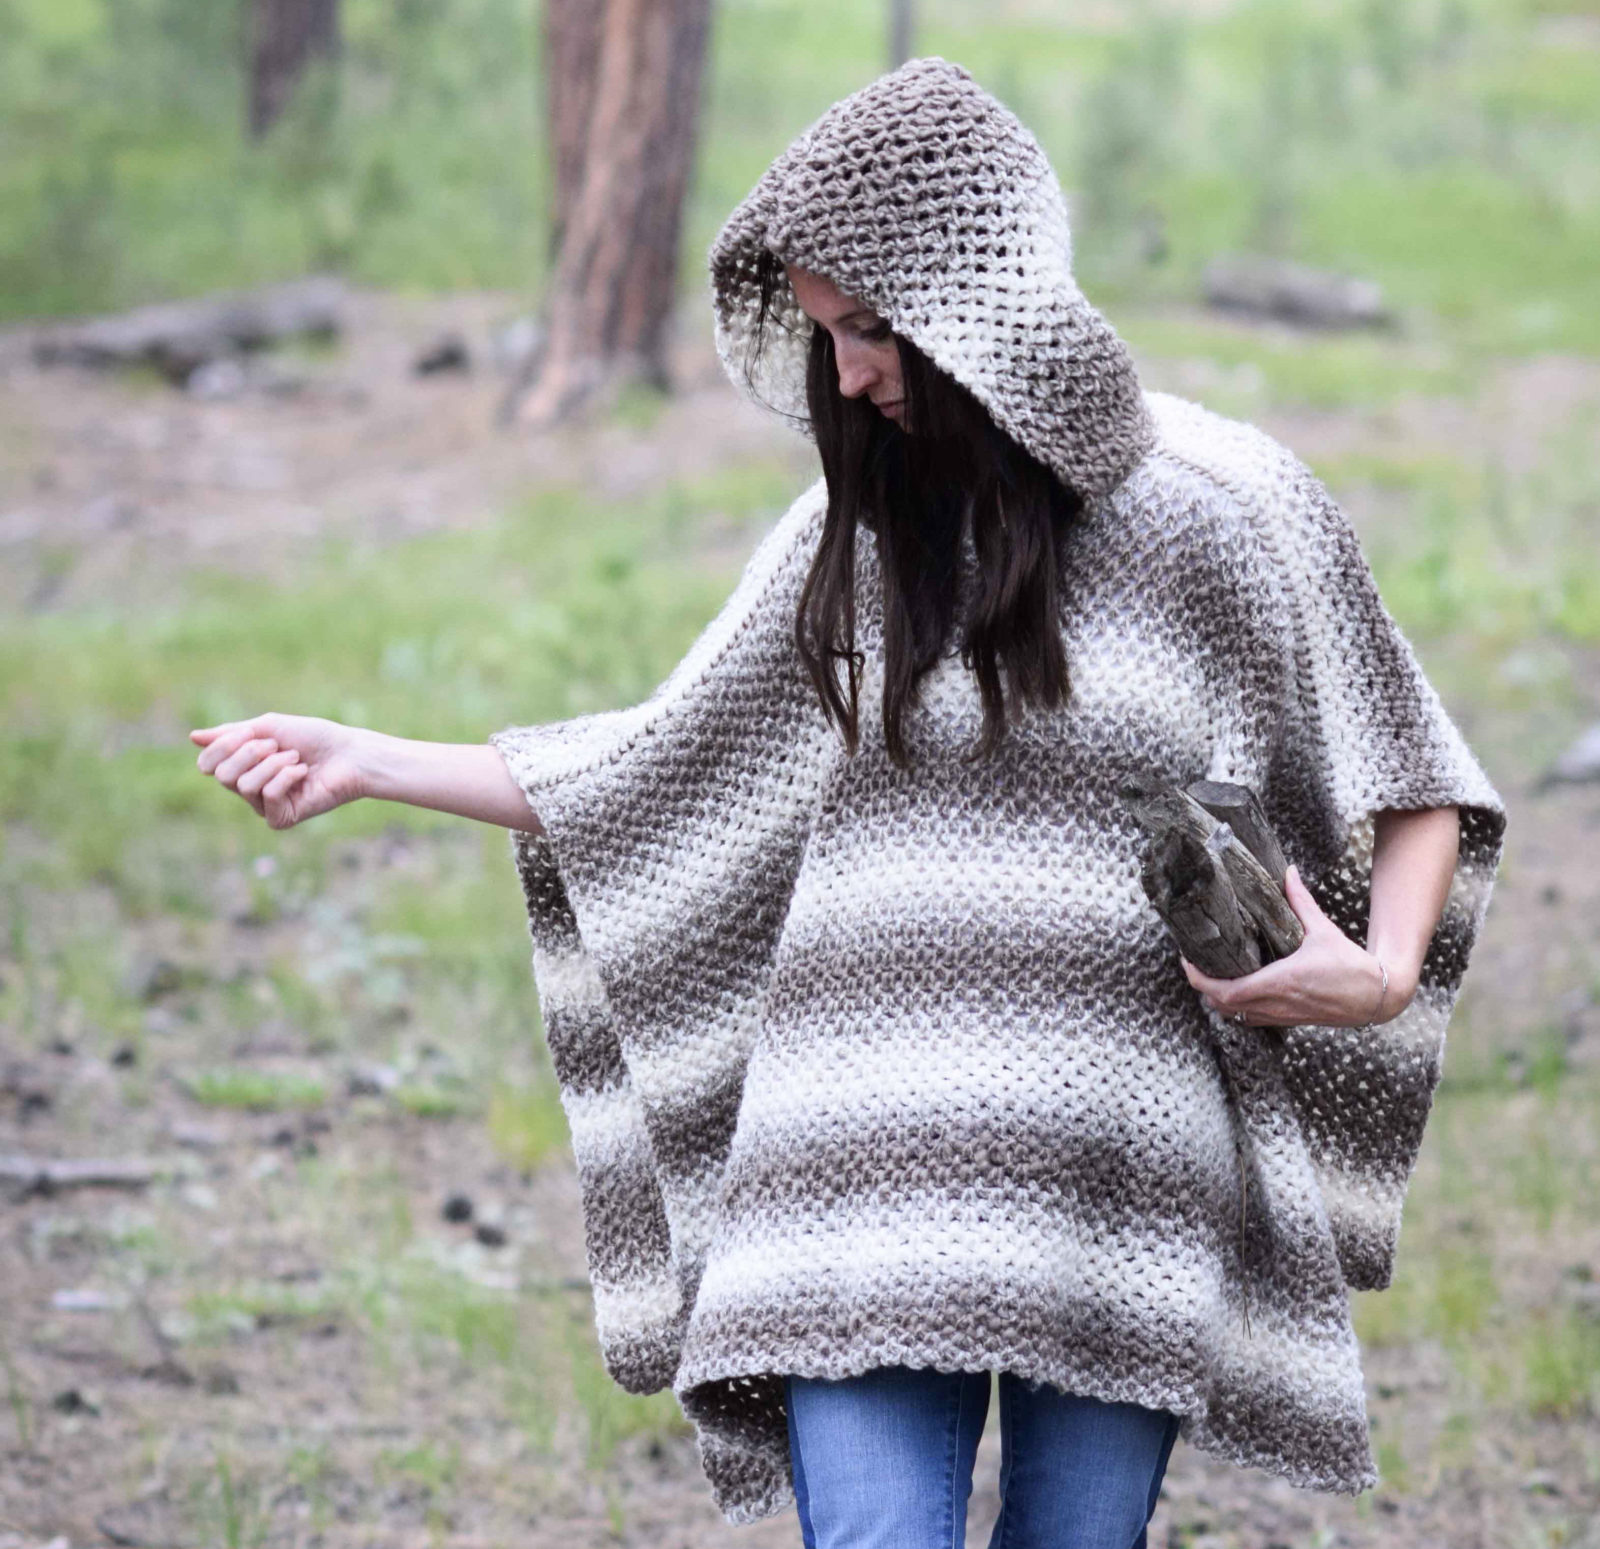 Driftwood Oversized Crochet Hooded Poncho Pattern – Mama In A Stitch